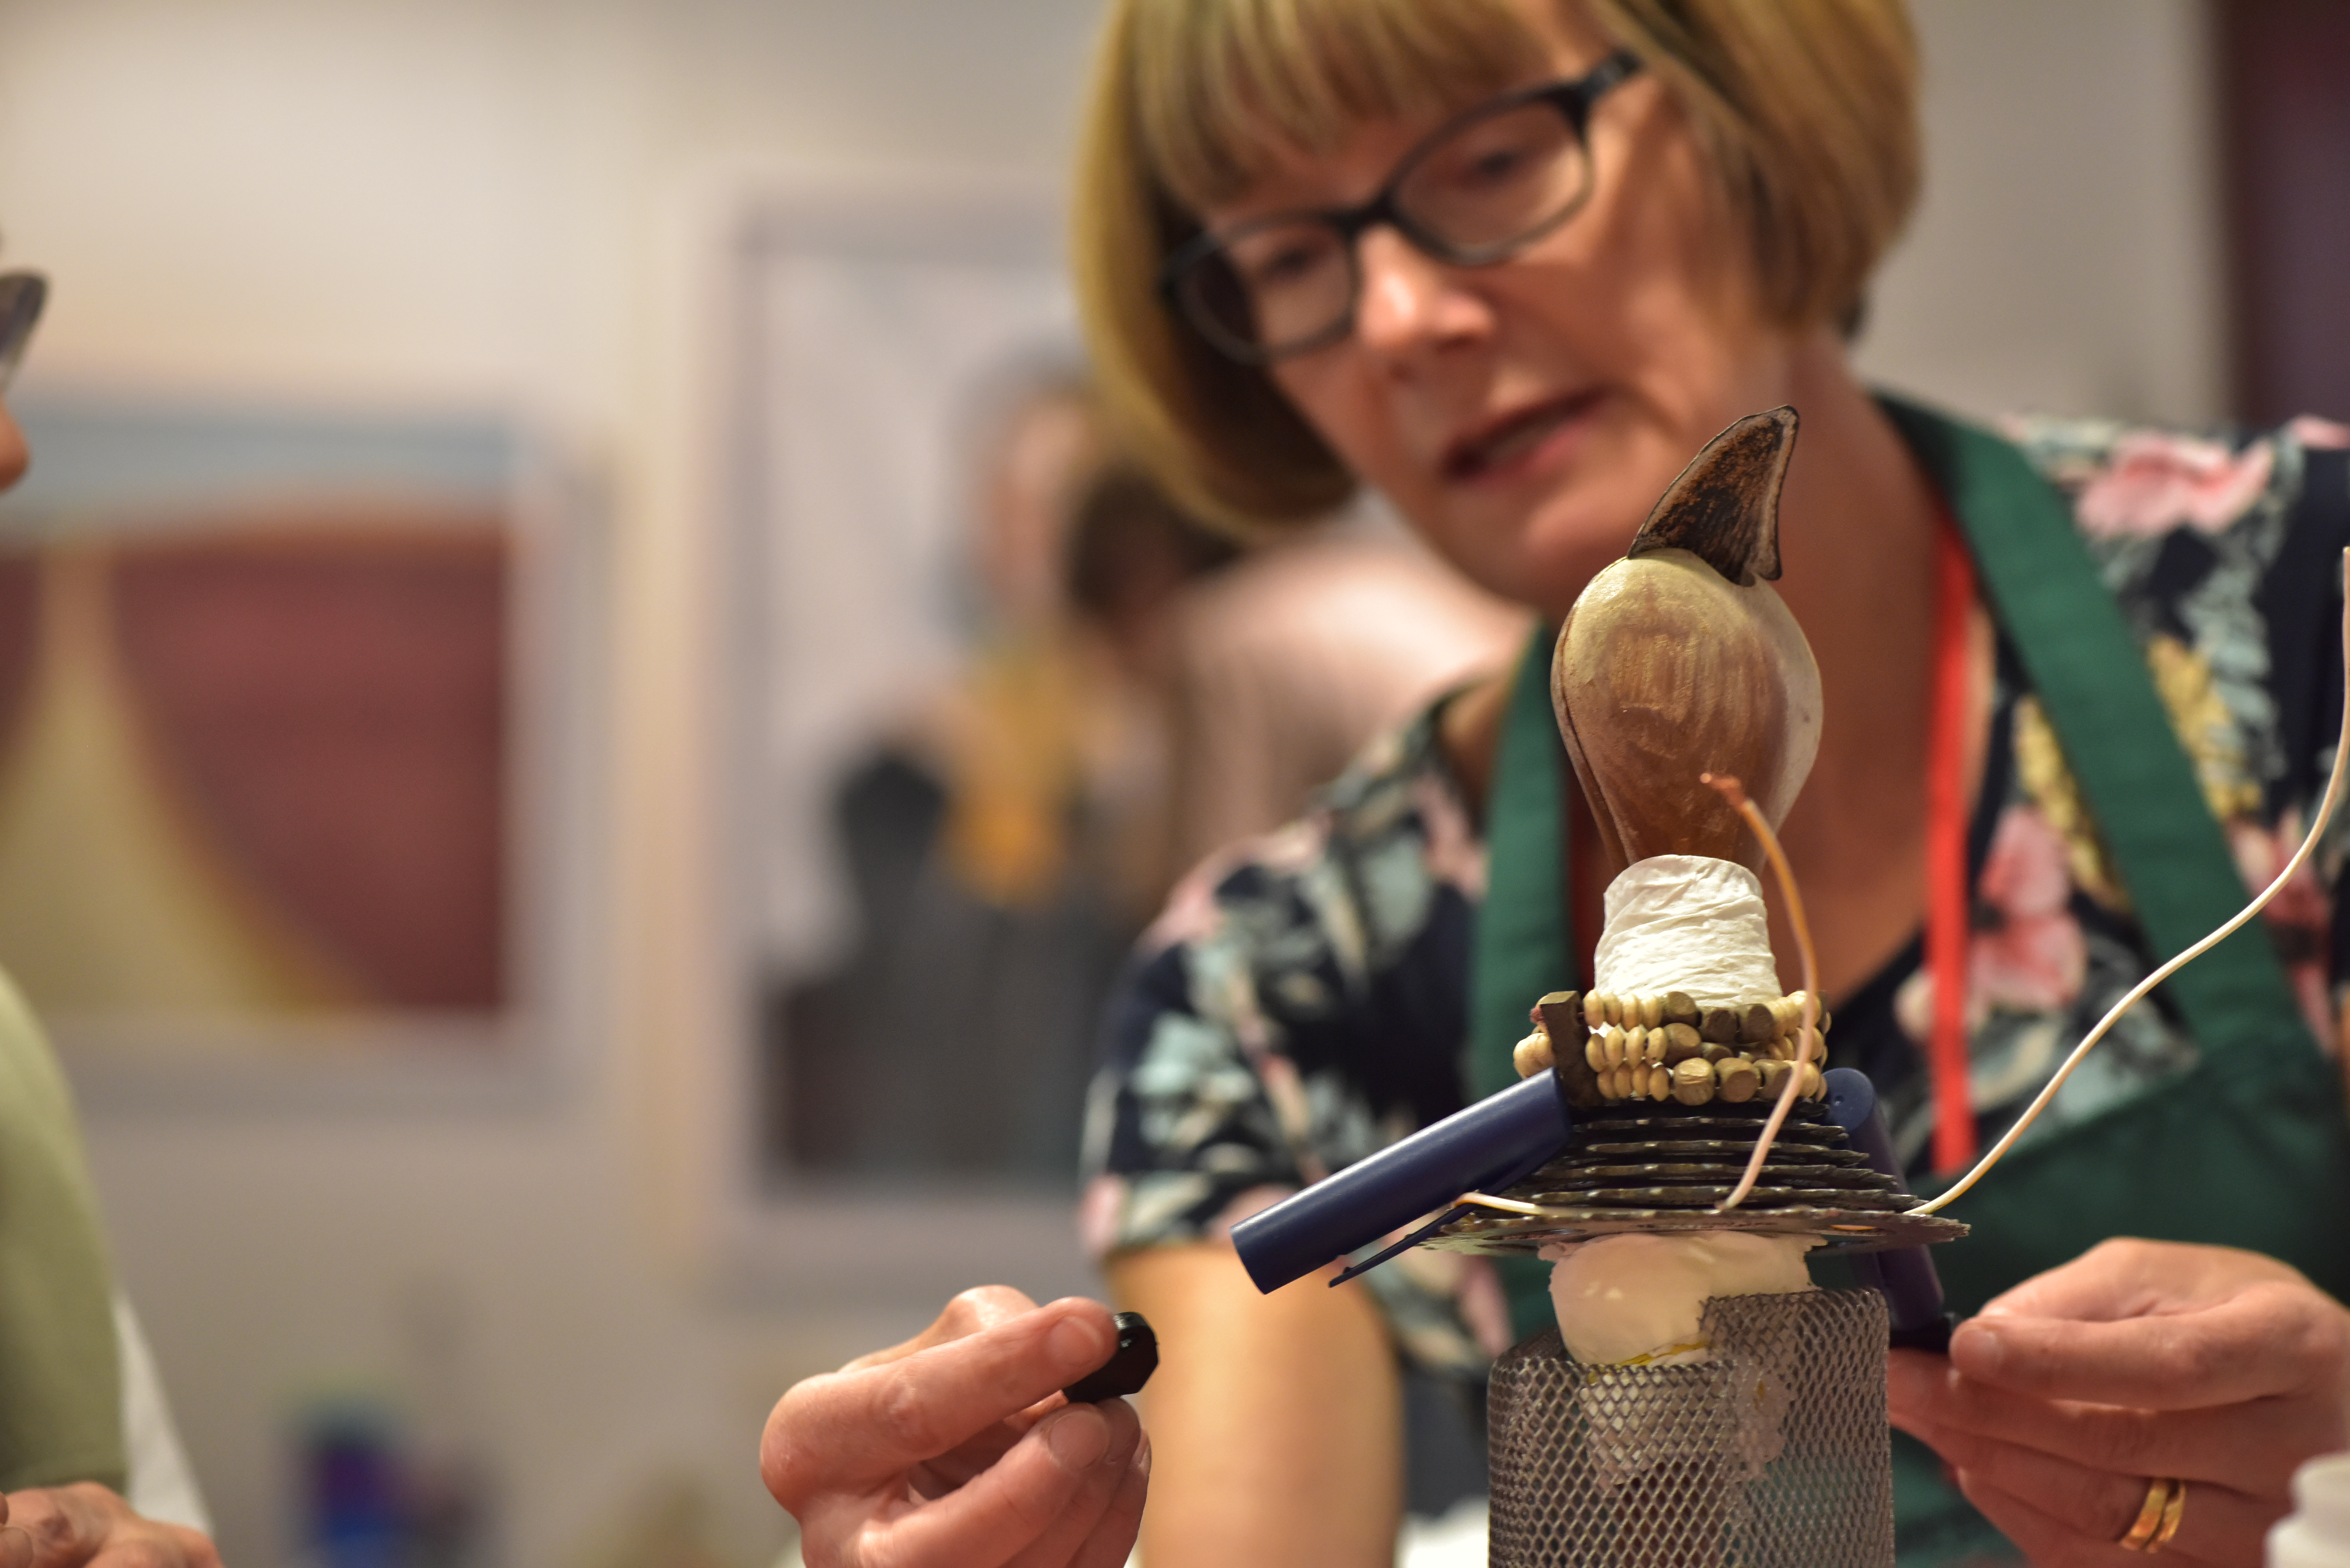 Step Up Workshop: Nek Chand, Image Courtesy of Andy Hood